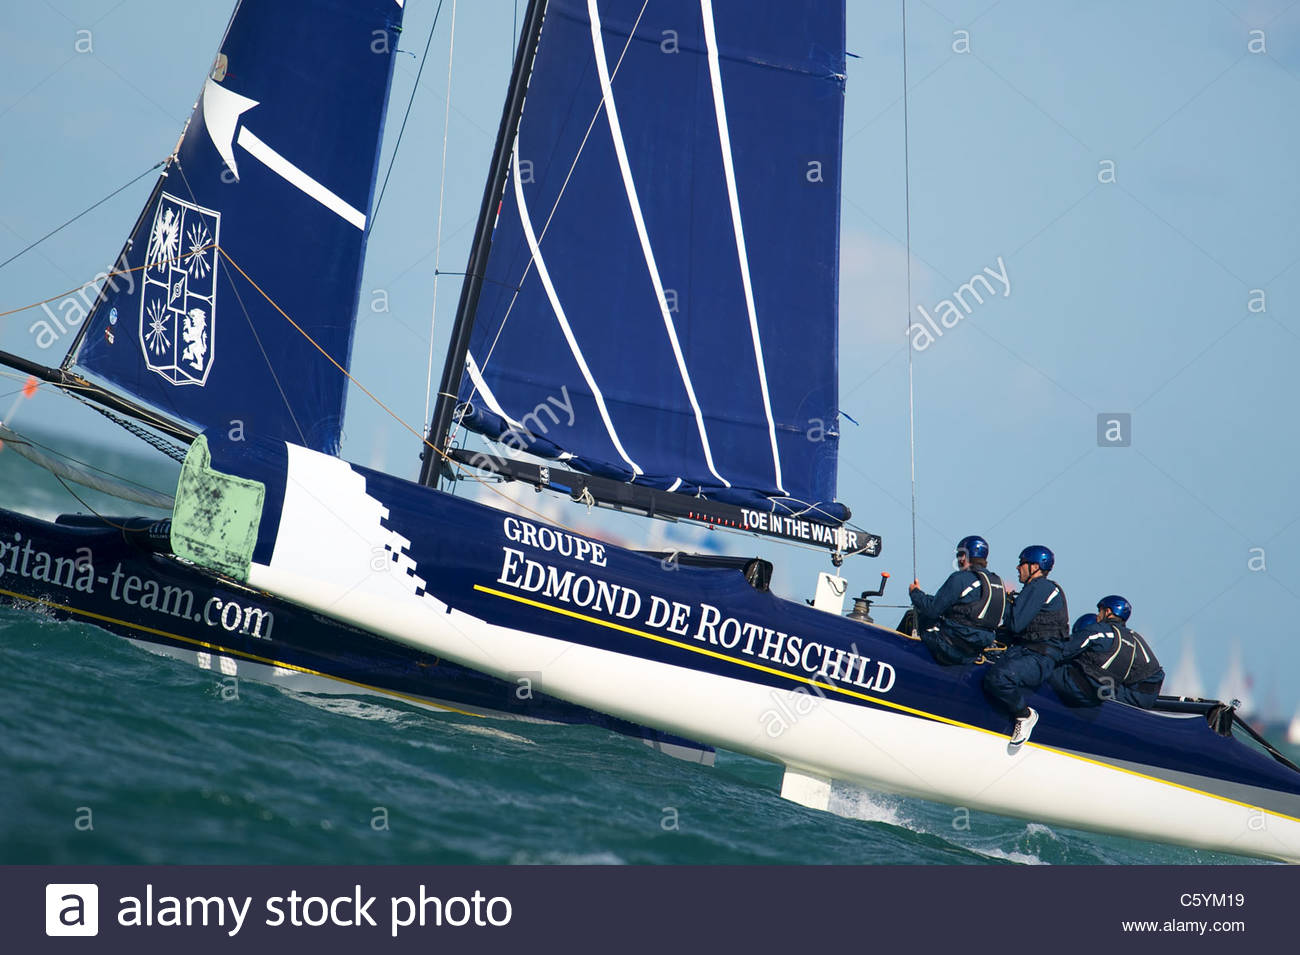 Extreme Sailing Series, Cowes, UK Stock Photo: 38102437 - Alamy